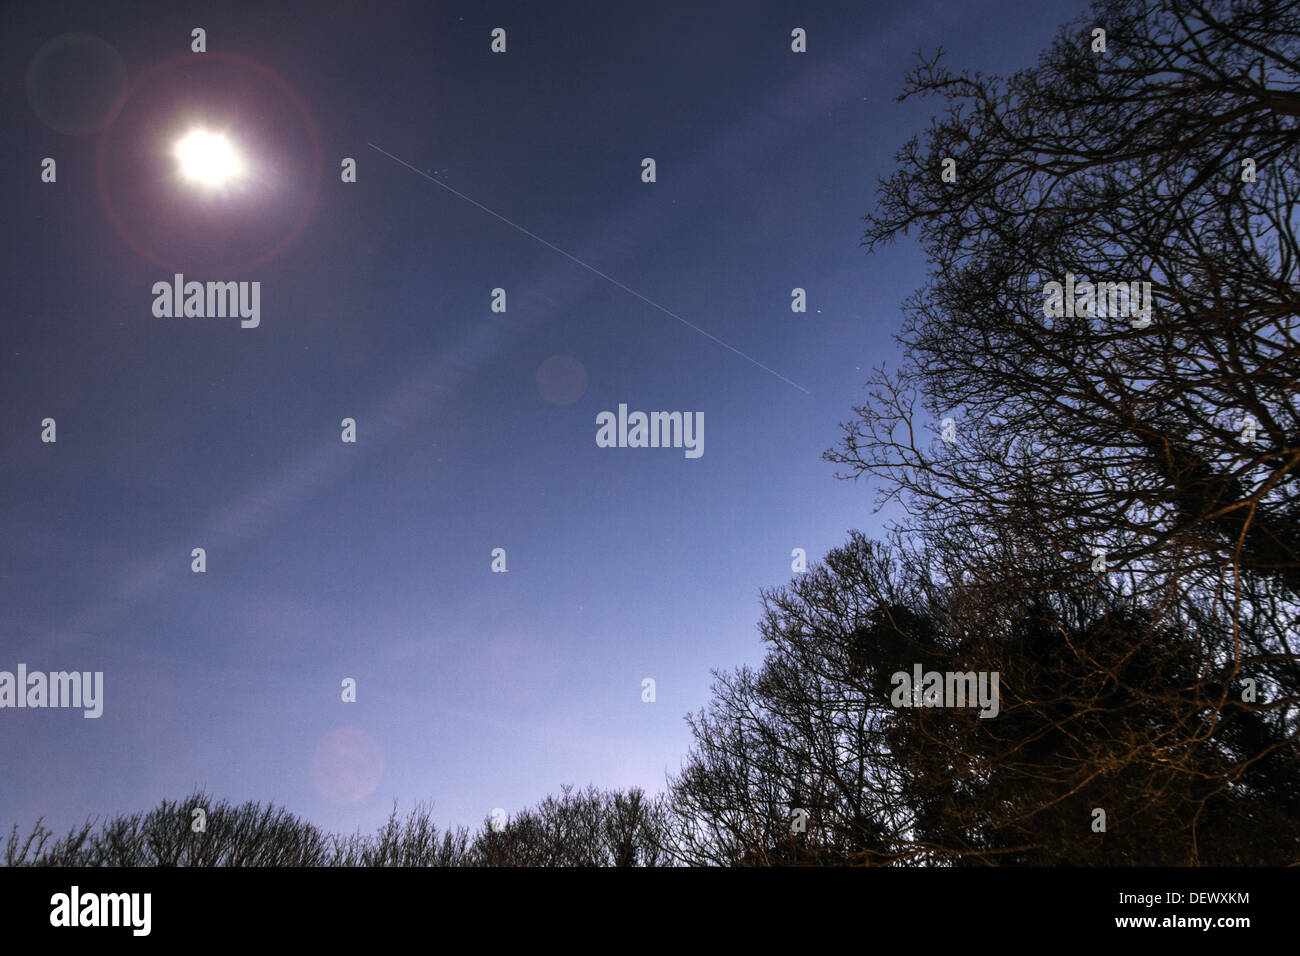 The International Space Station (ISS) passes over some tree's - Stock Image